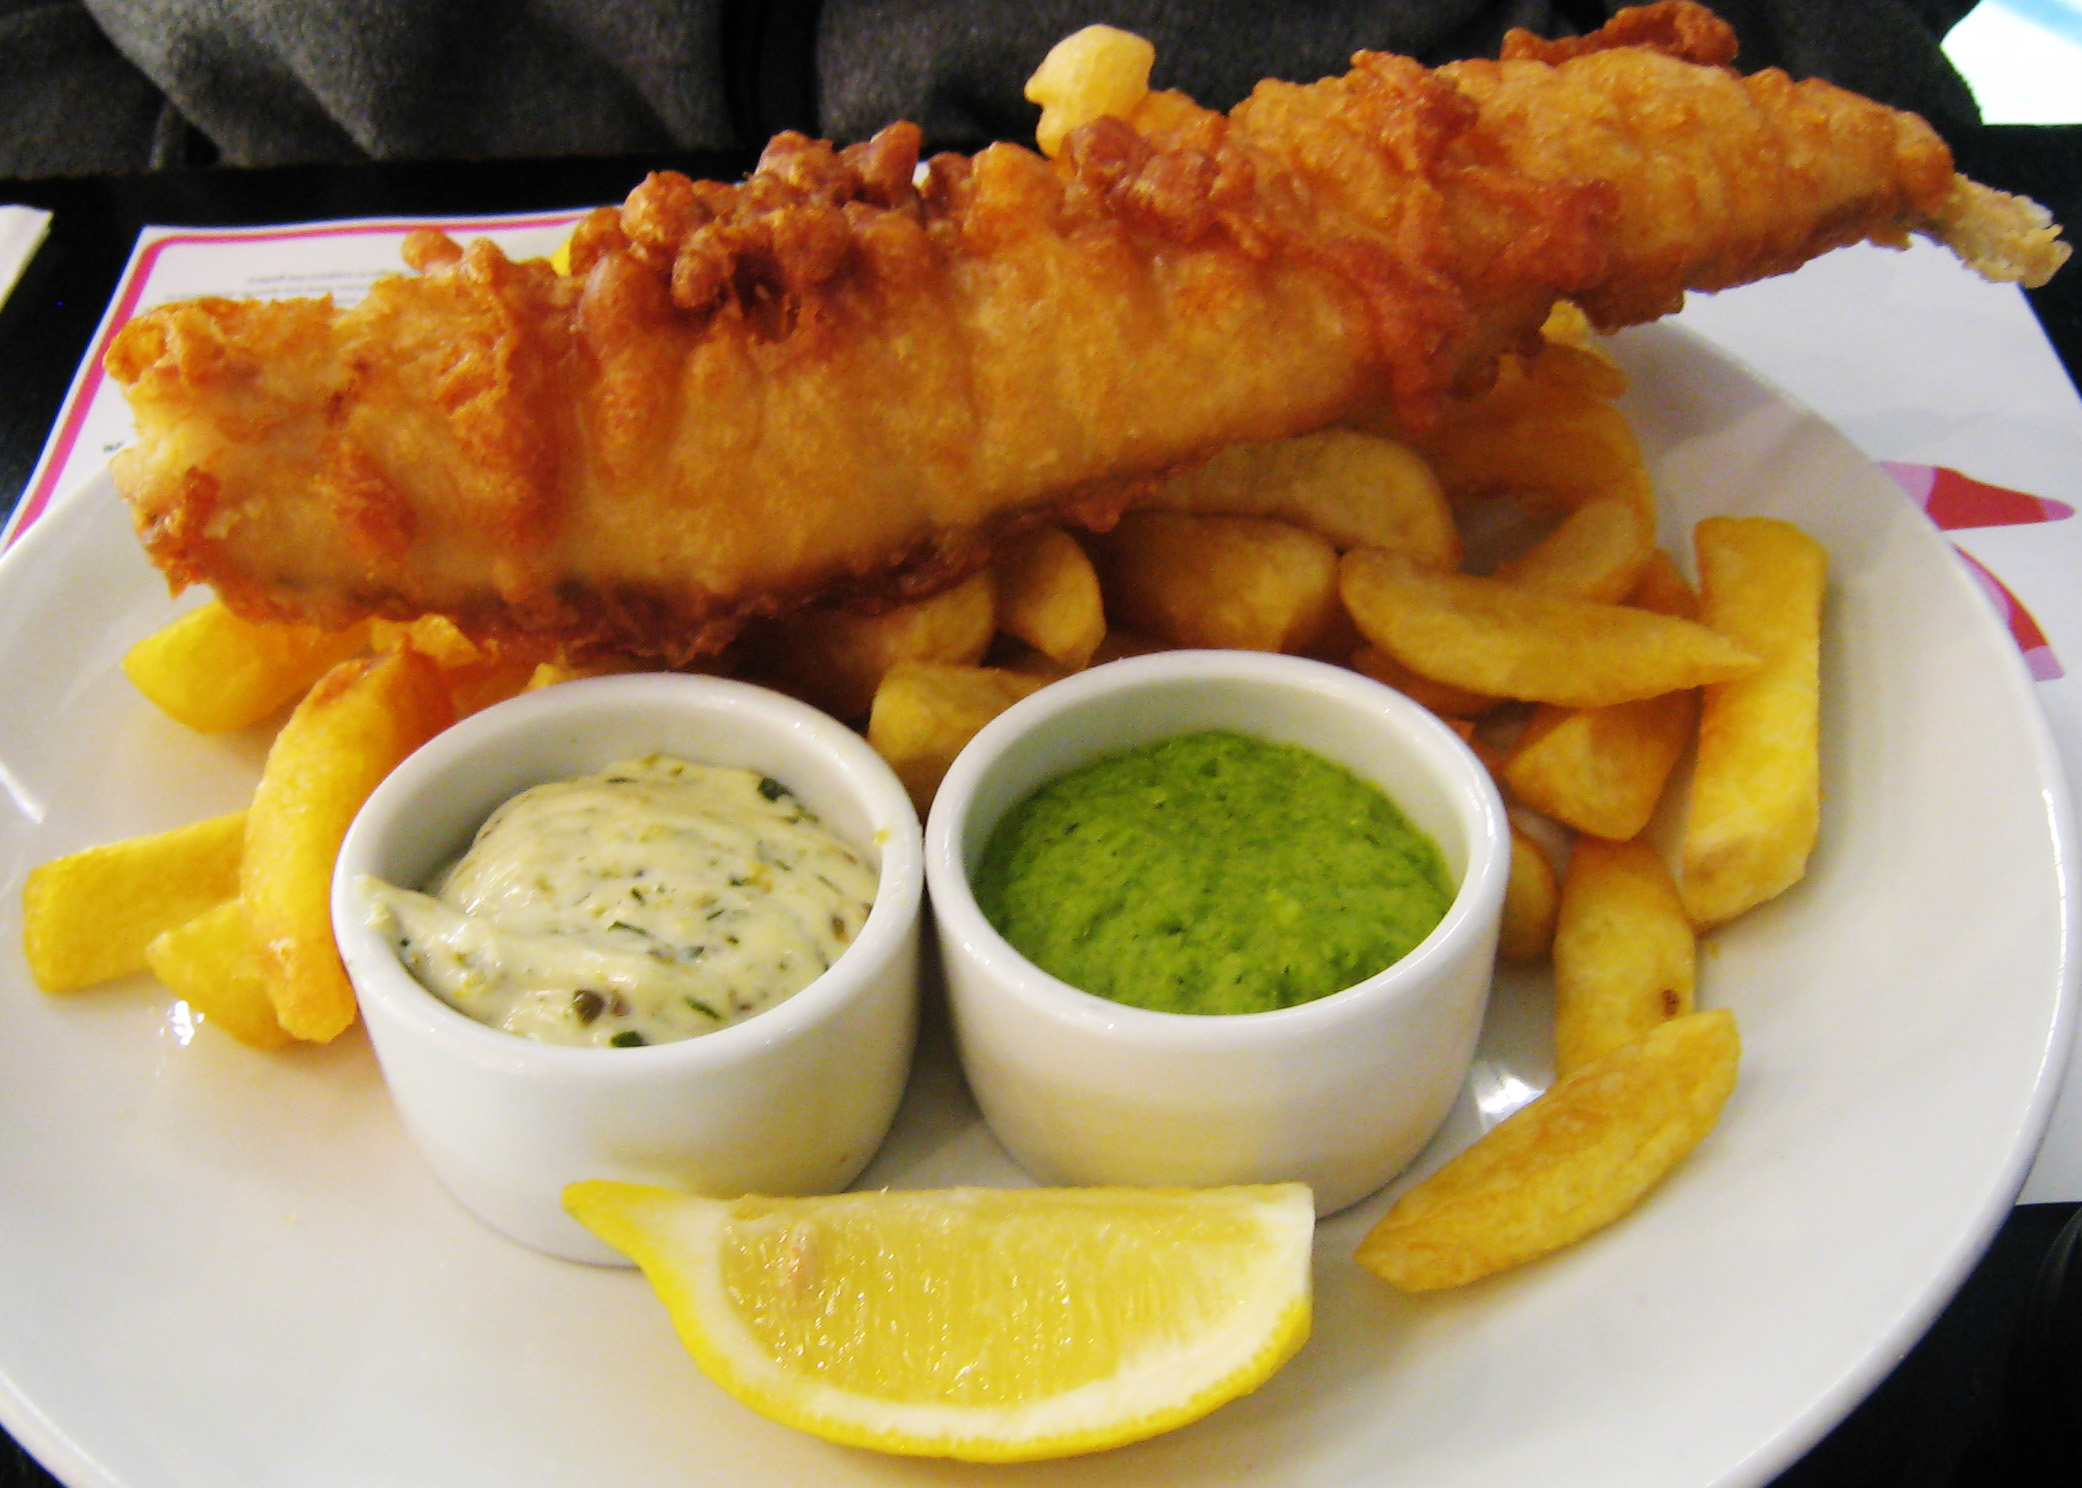 ... fish 'n chips with mushy peas, lemon and splodge of tartare sauce